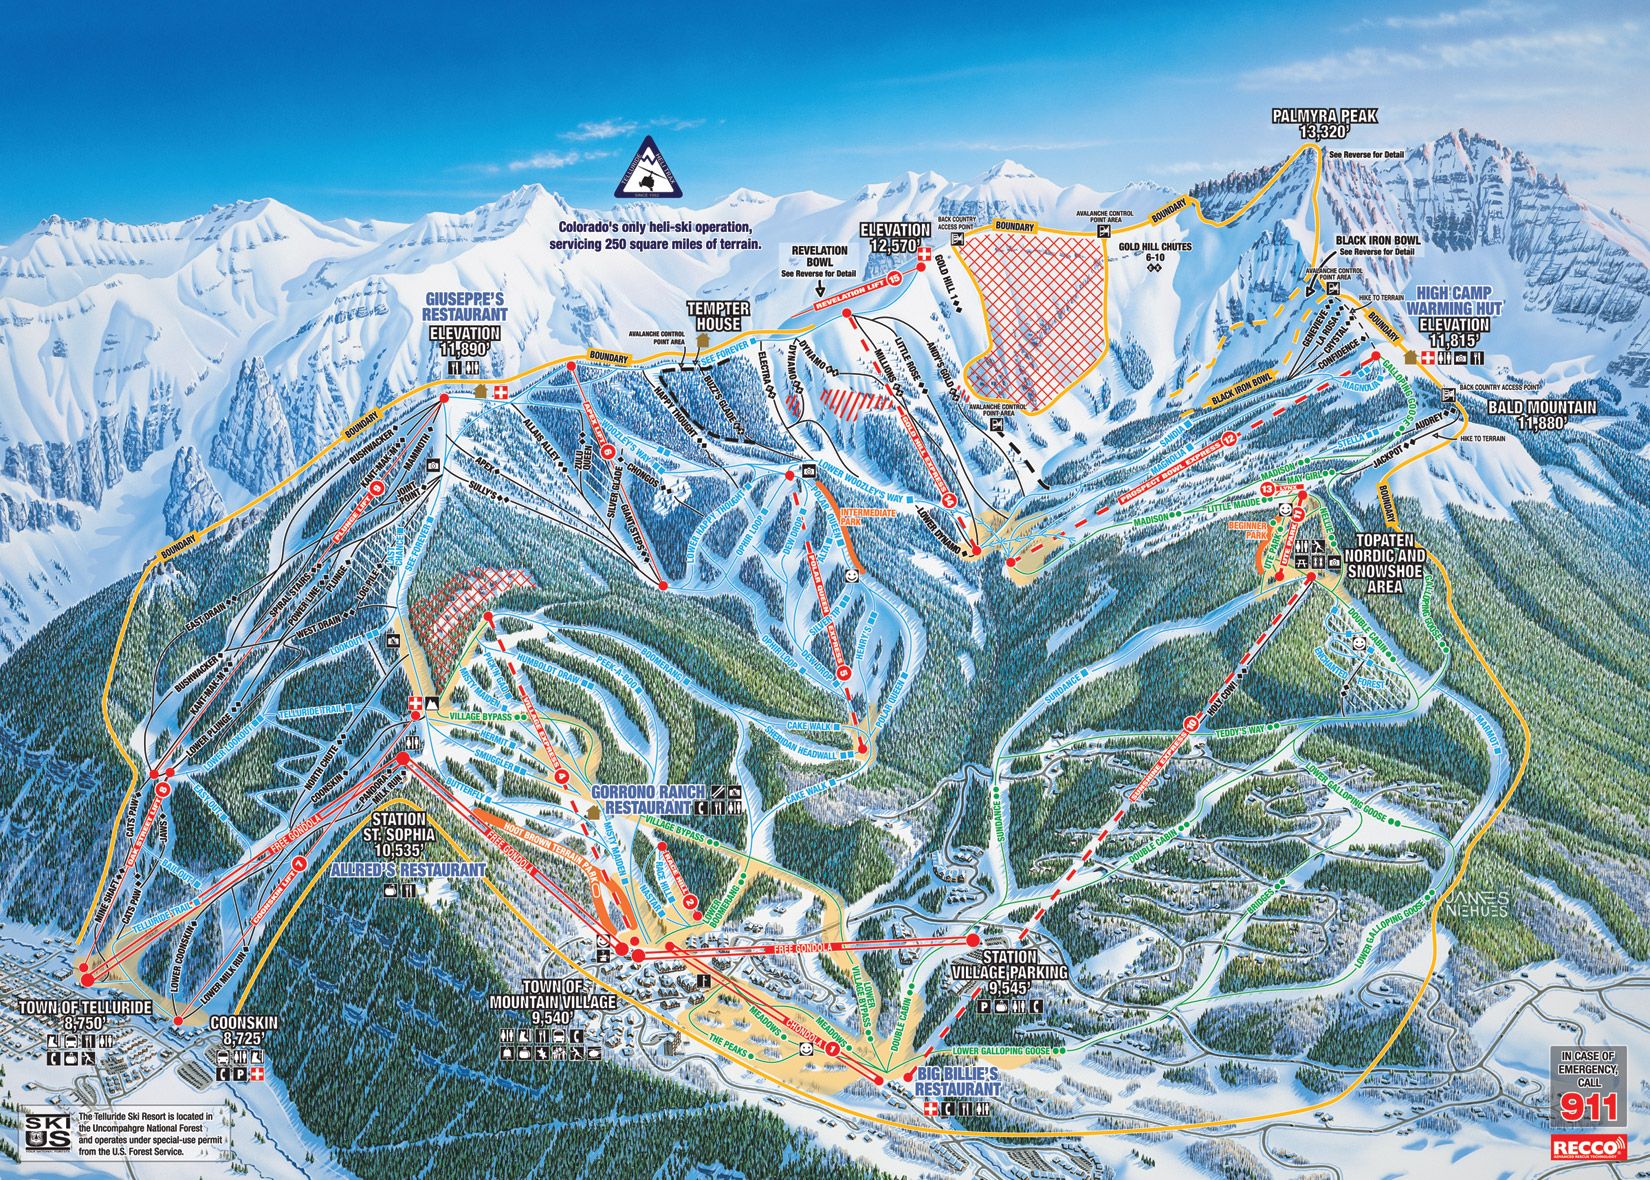 Telluride Ski Resort And Crested Butte Mountain Resort